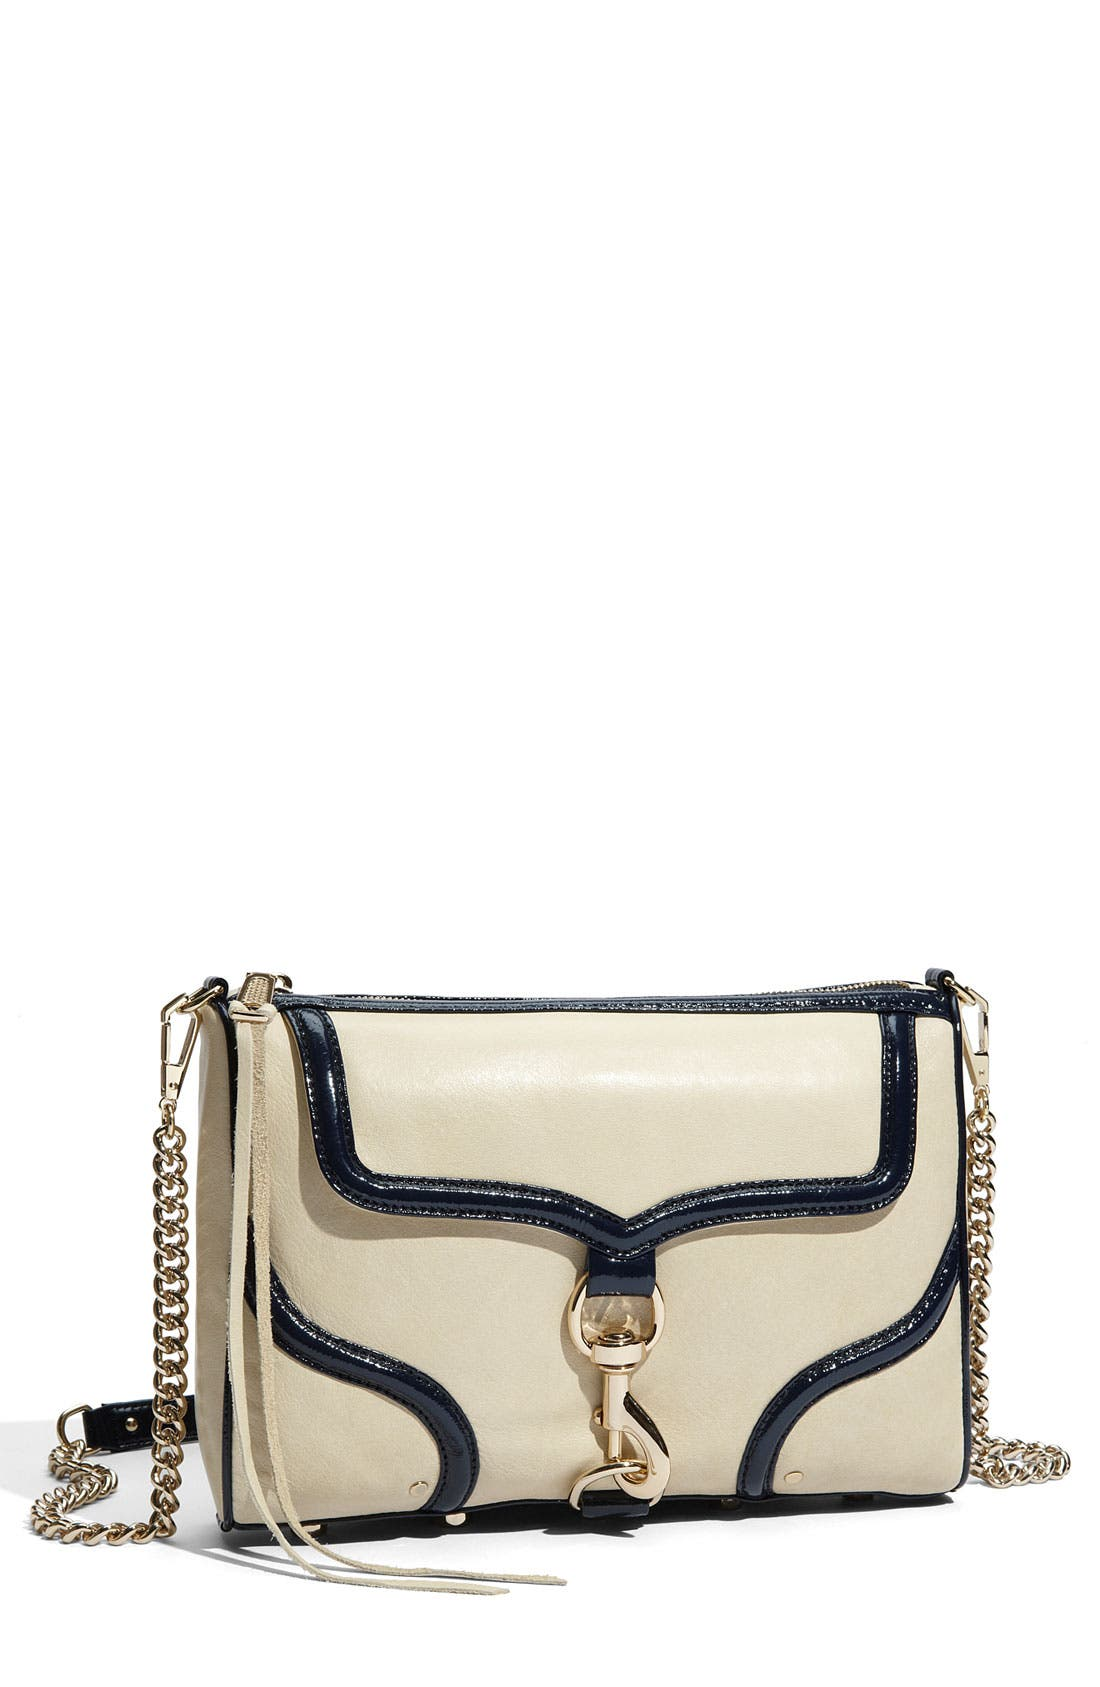 'Bombe MAC' Leather Crossbody Clutch,                             Main thumbnail 1, color,                             Ivory W/ Navy Trim